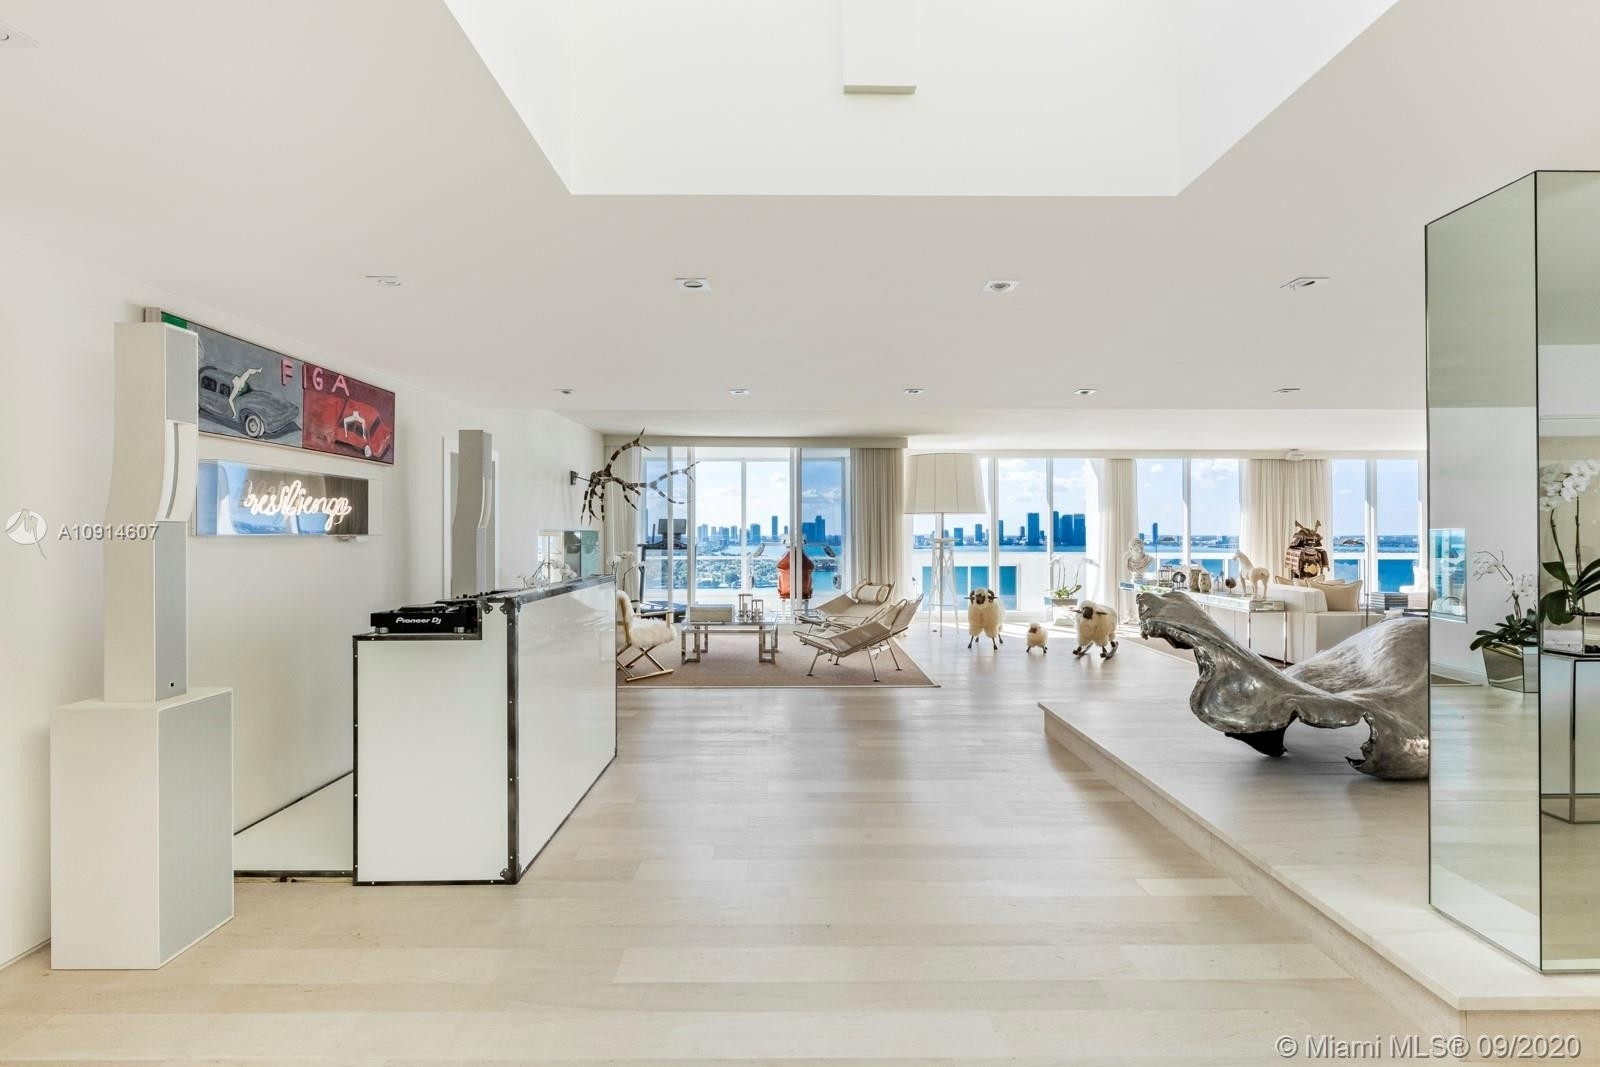 Condominium at 1800 Sunset Harbour Dr , TS-2/3 Sunset Harbour, Miami Beach, FL 33139